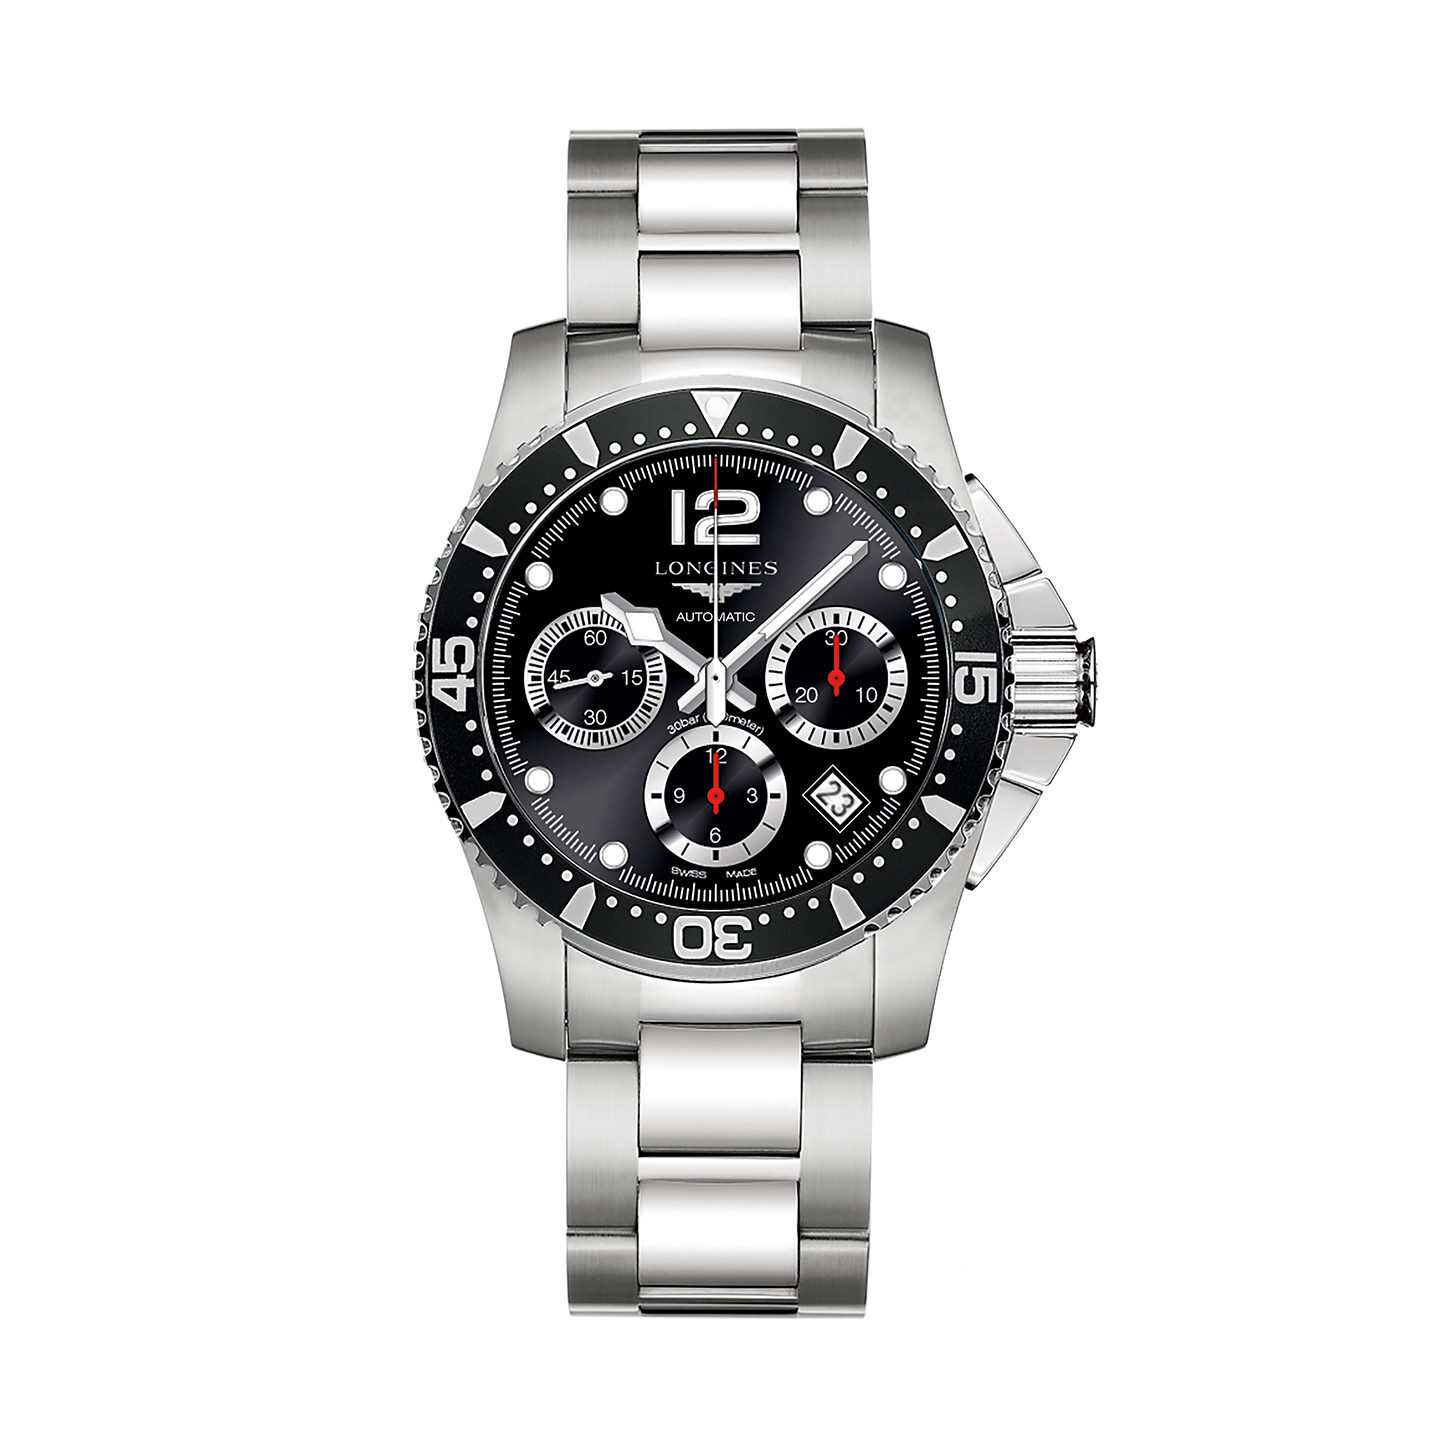 Longines Hydroconquest Collection – Stainless Steel Chronograph